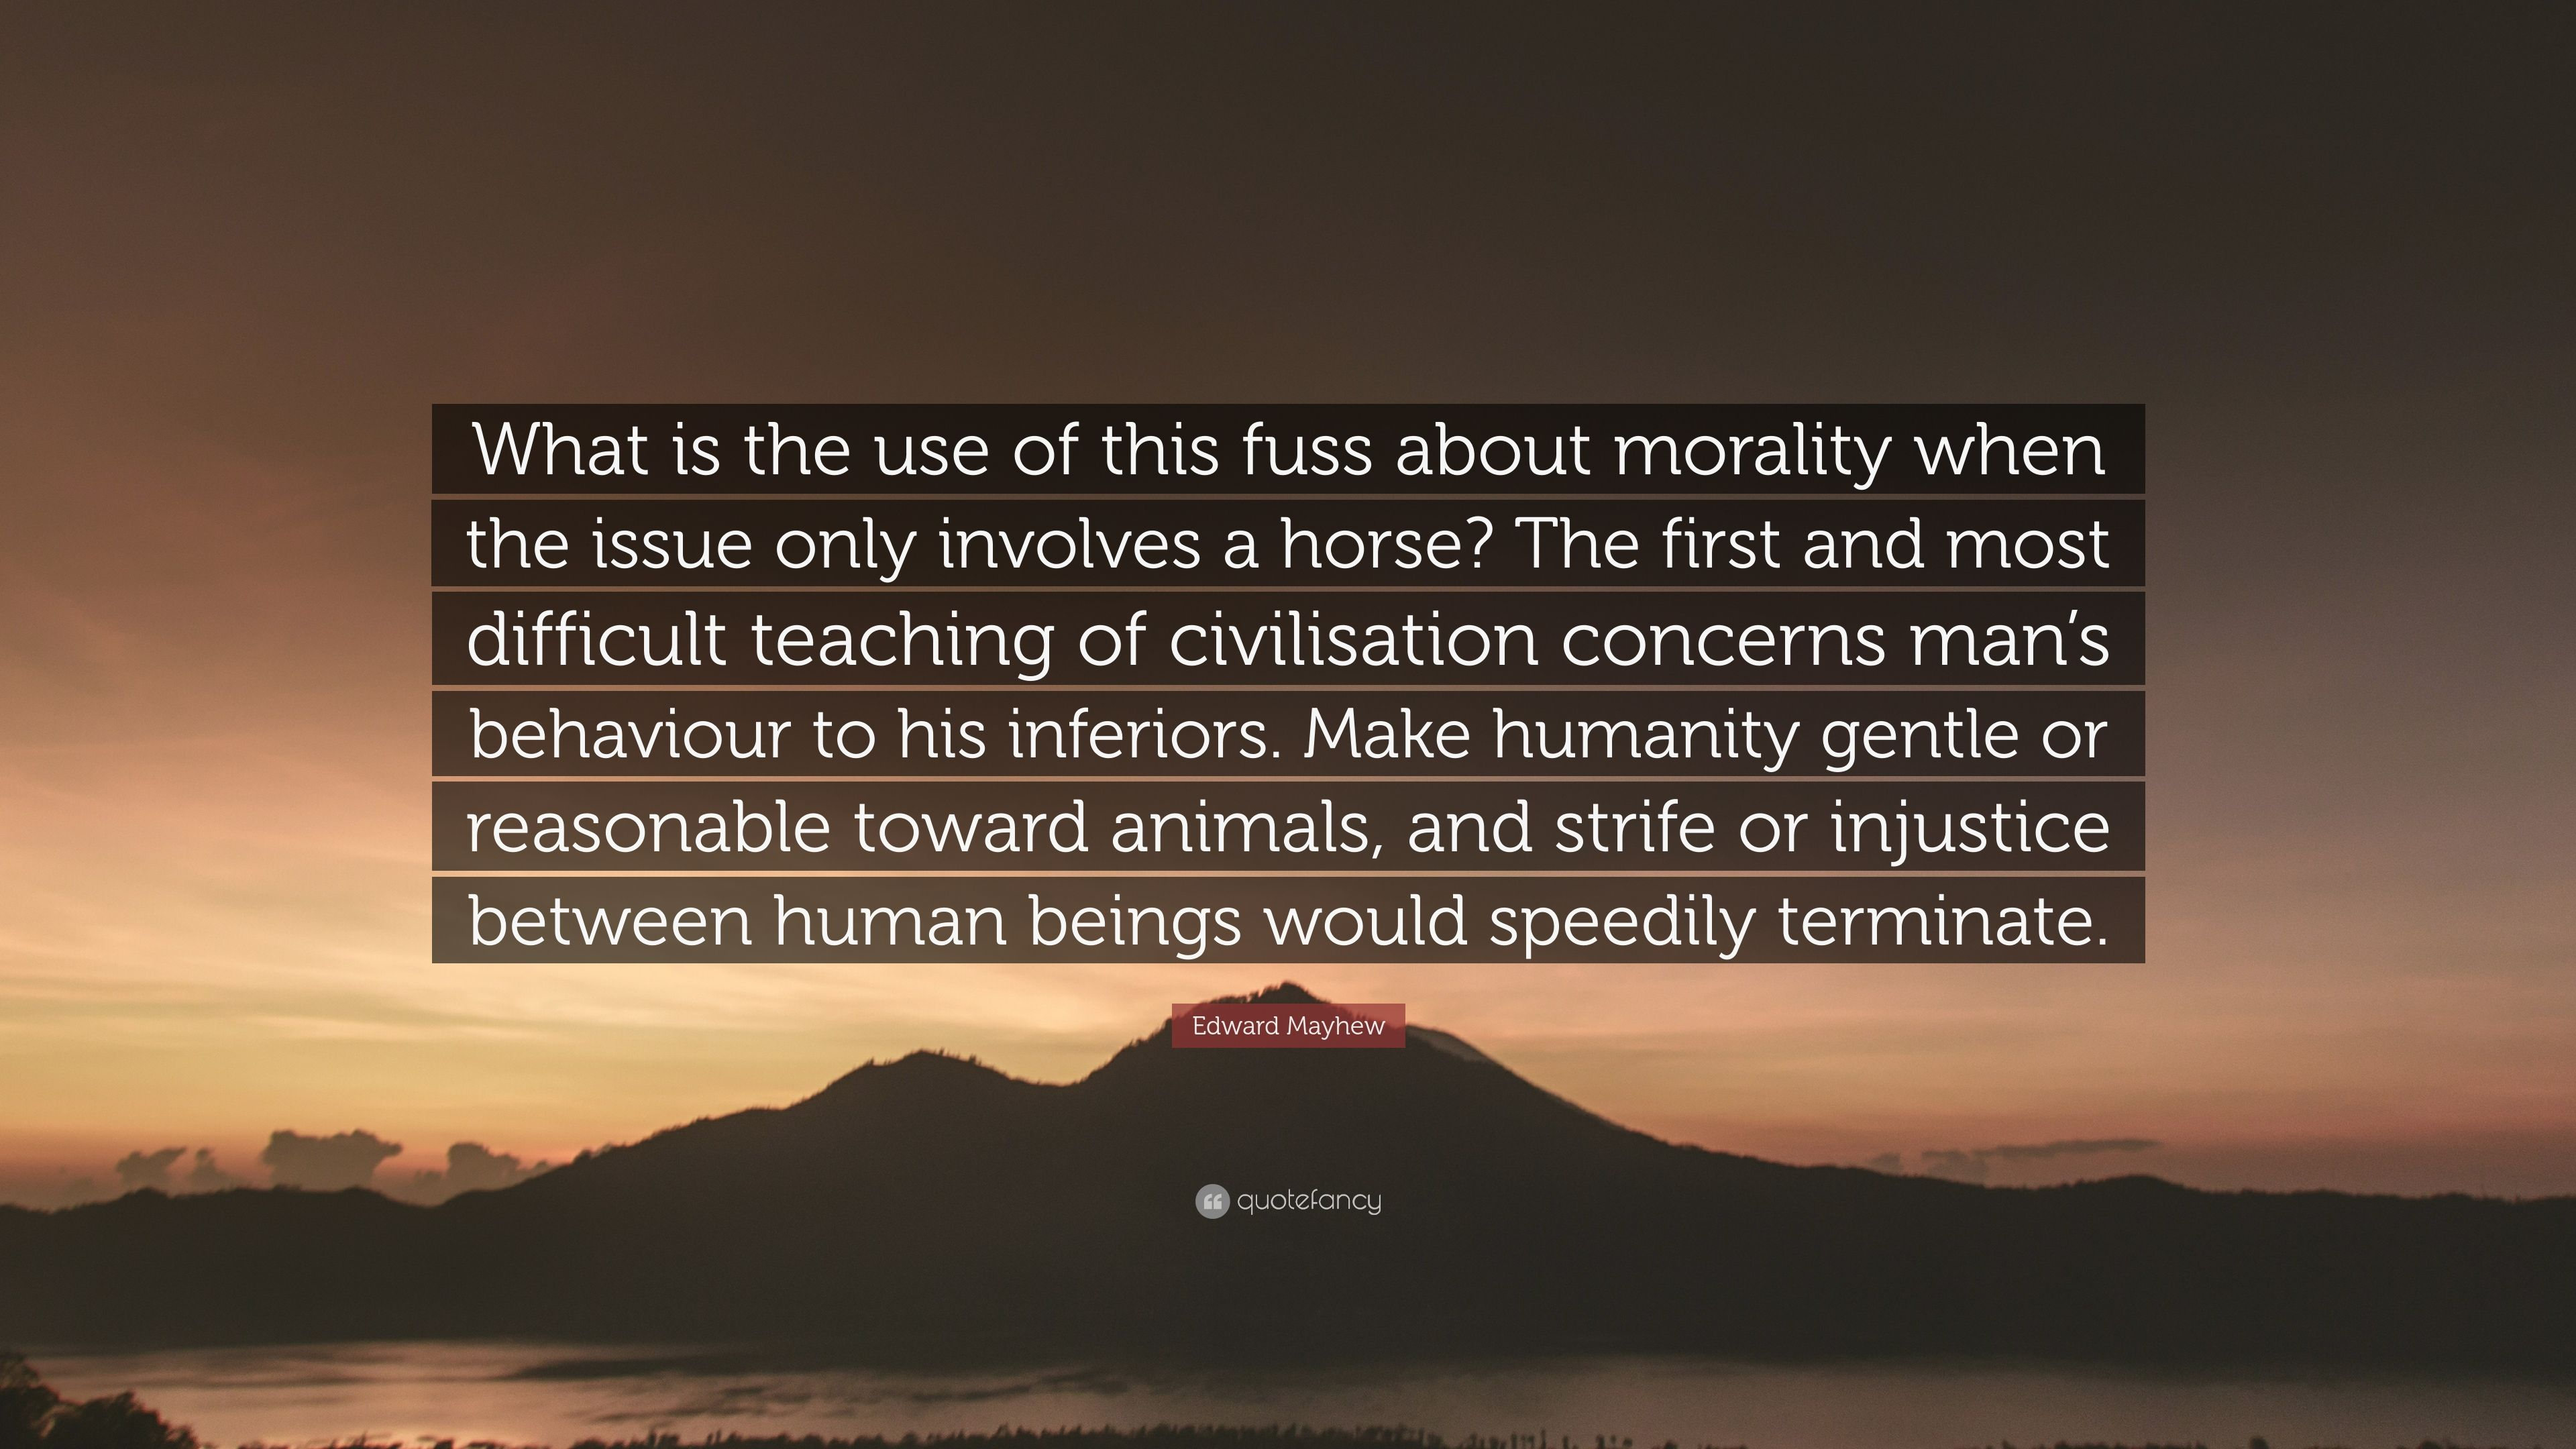 Edward Mayhew Quote What Is The Use Of This Fuss About Morality When The Issue Only Involves A Horse The First And Most Difficult Teaching 7 Wallpapers Quotefancy